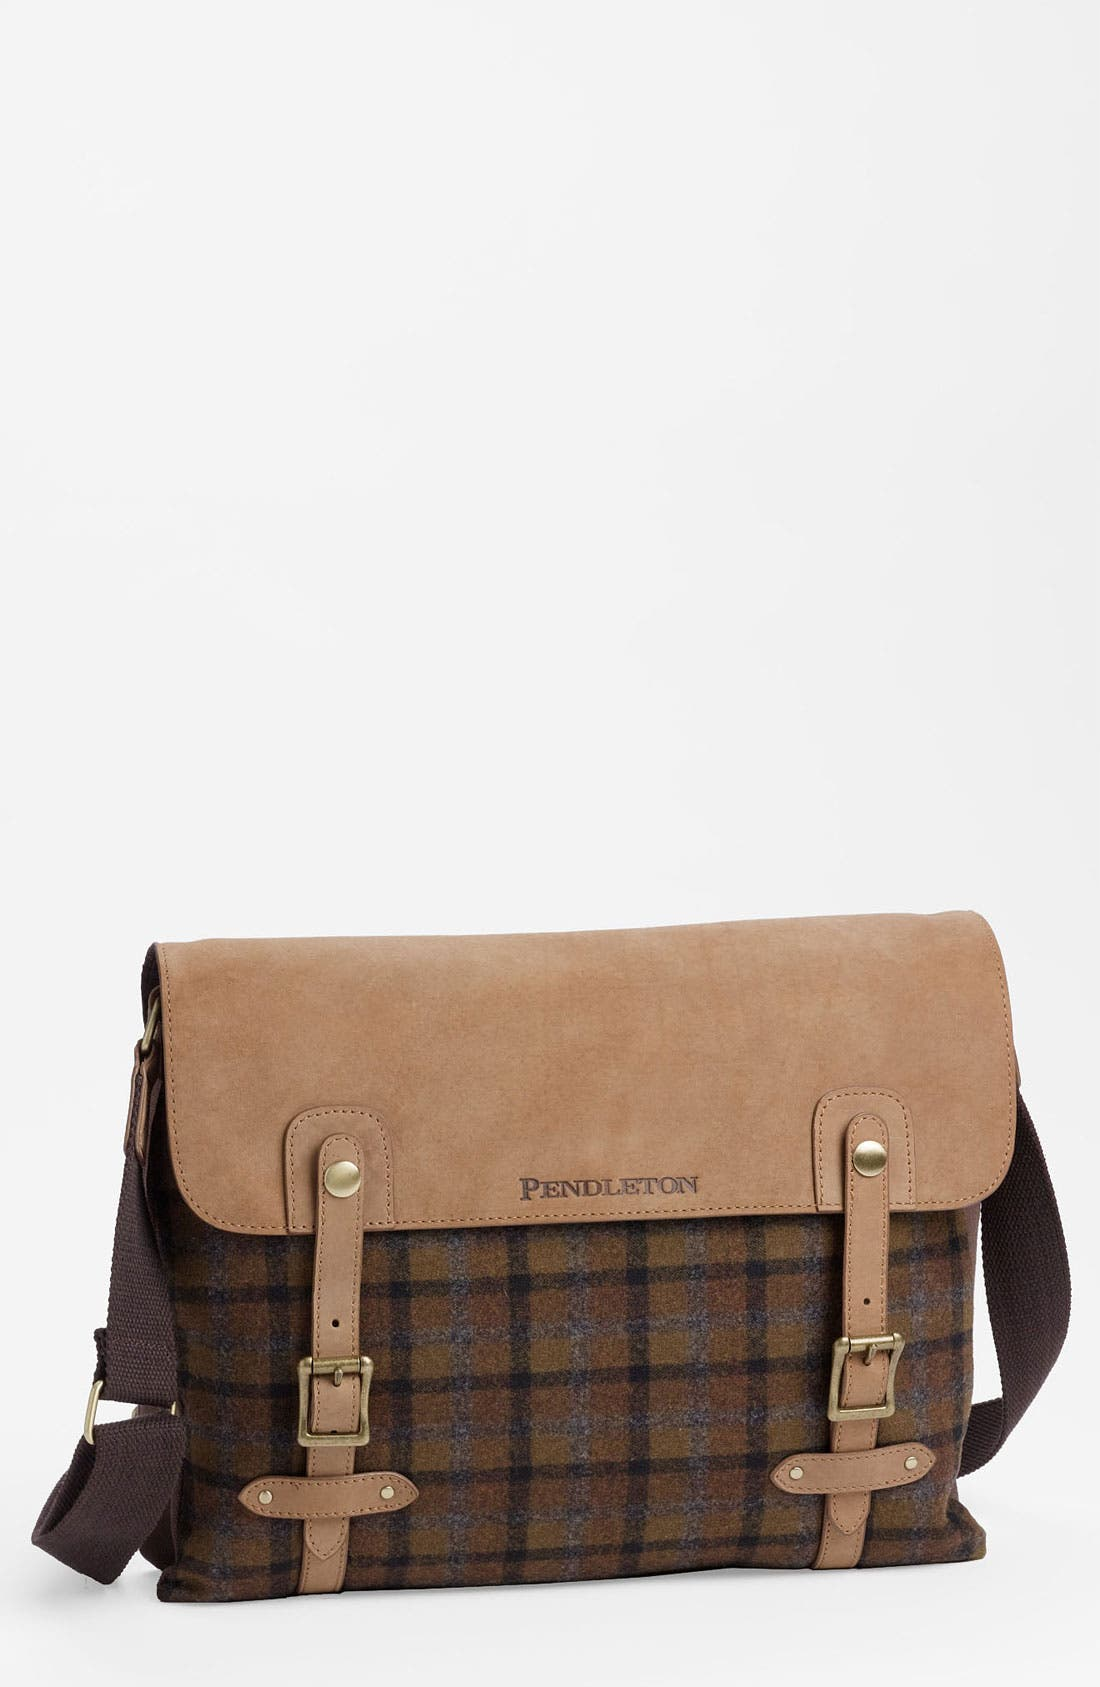 Main Image - Pendleton Messenger Bag